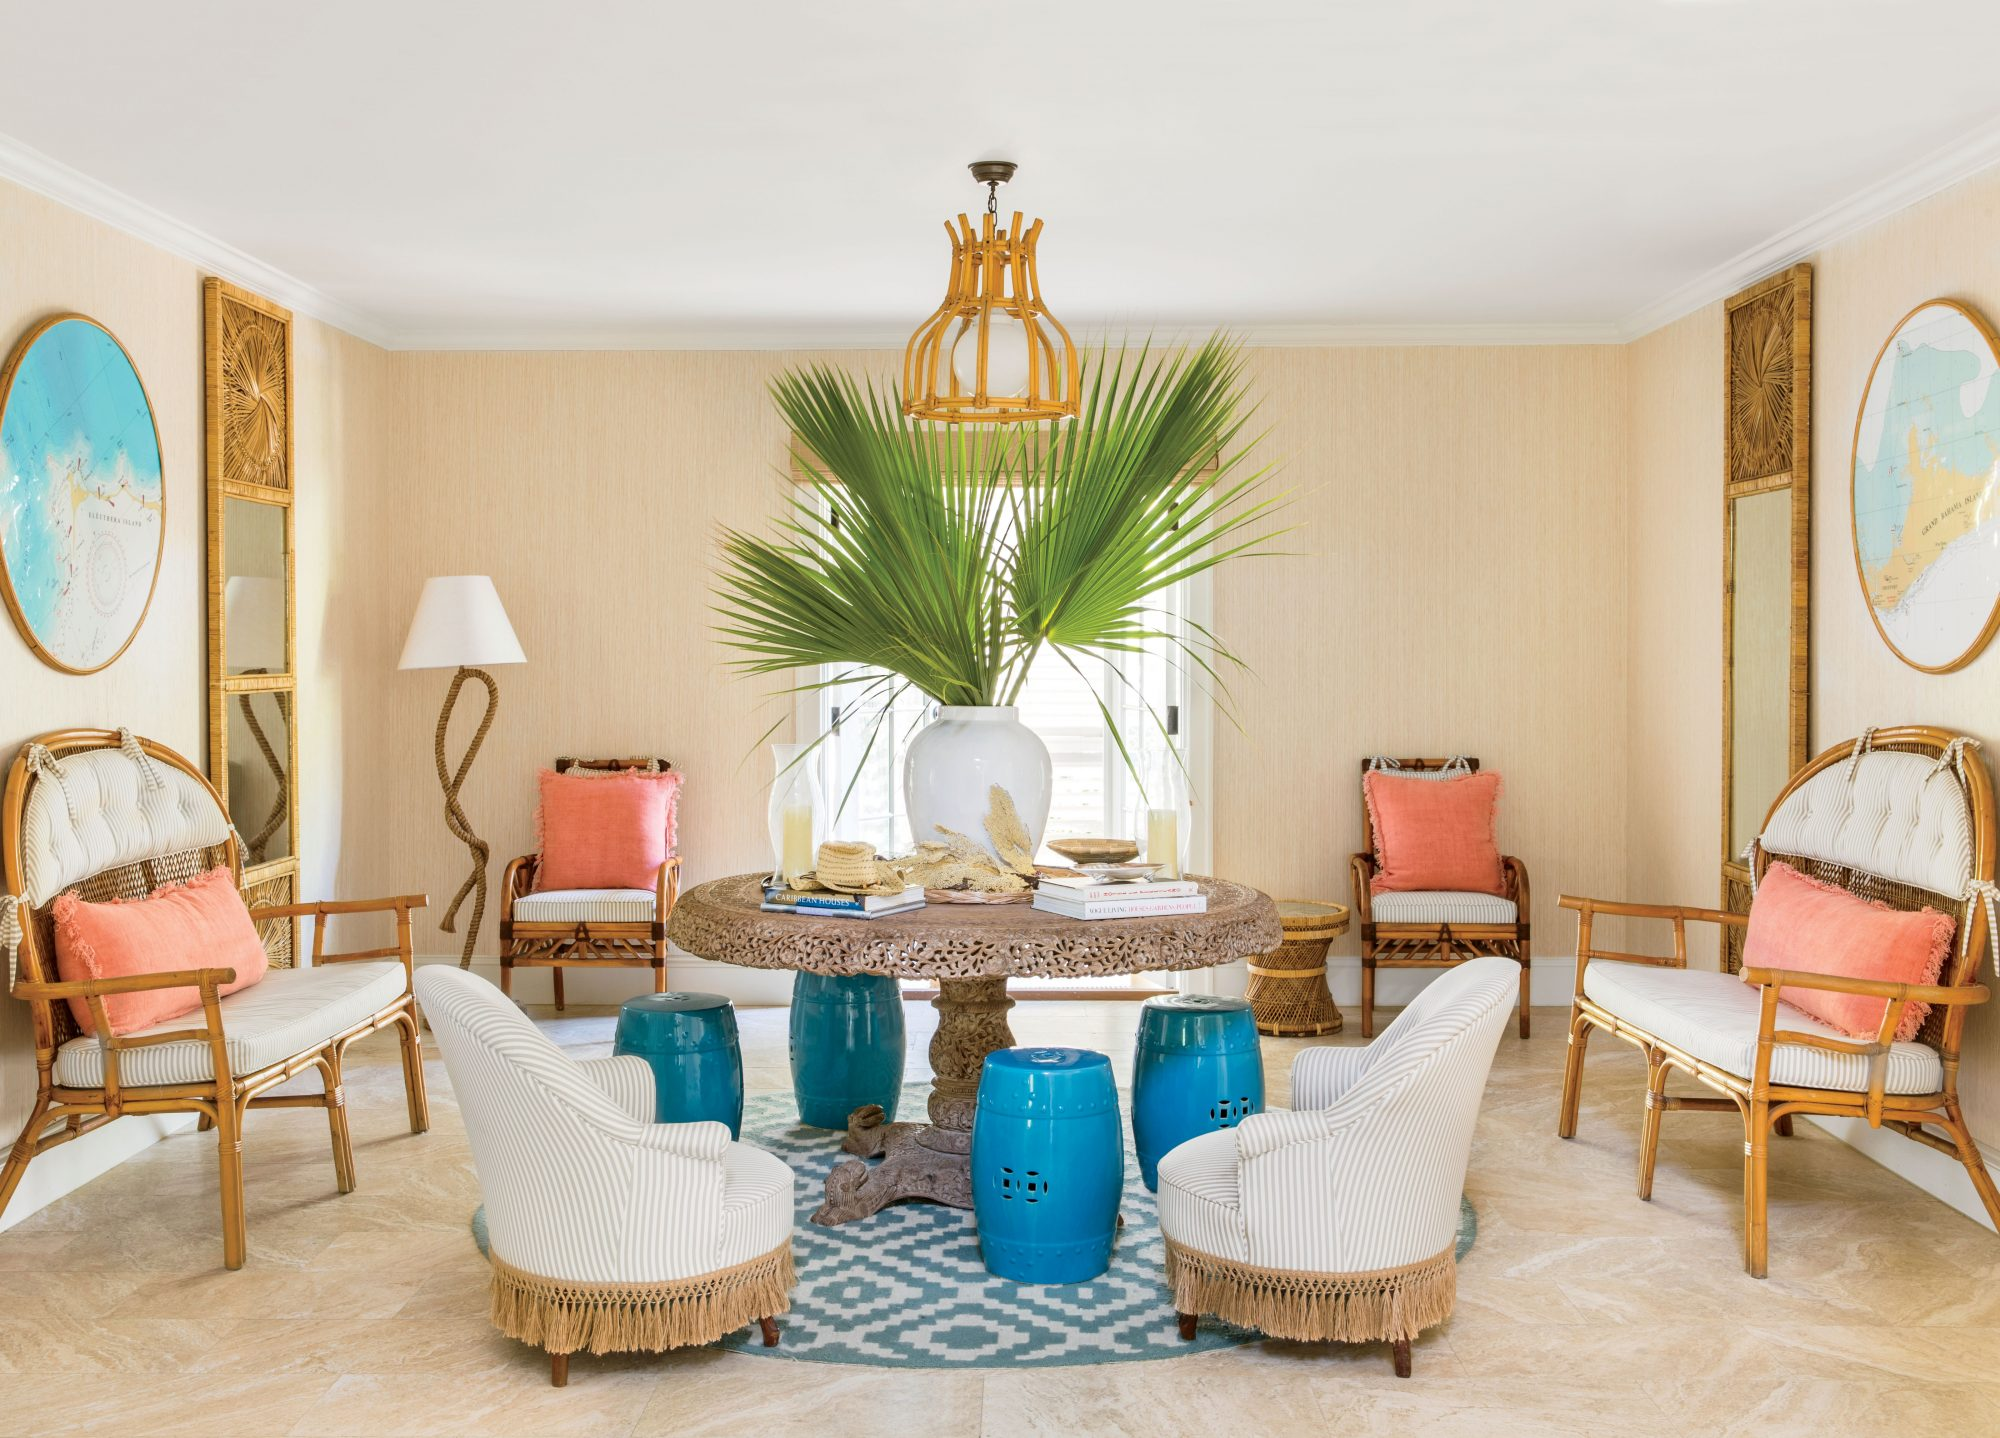 Designer Amanda Lindroth's Caribbean-classic style is exemplified in this Harbor Island, Bahamas, home, where bright color and natural textures reign supreme. In the entry, pictured here, teal garden stools provide a pop of coastal color against a neutral